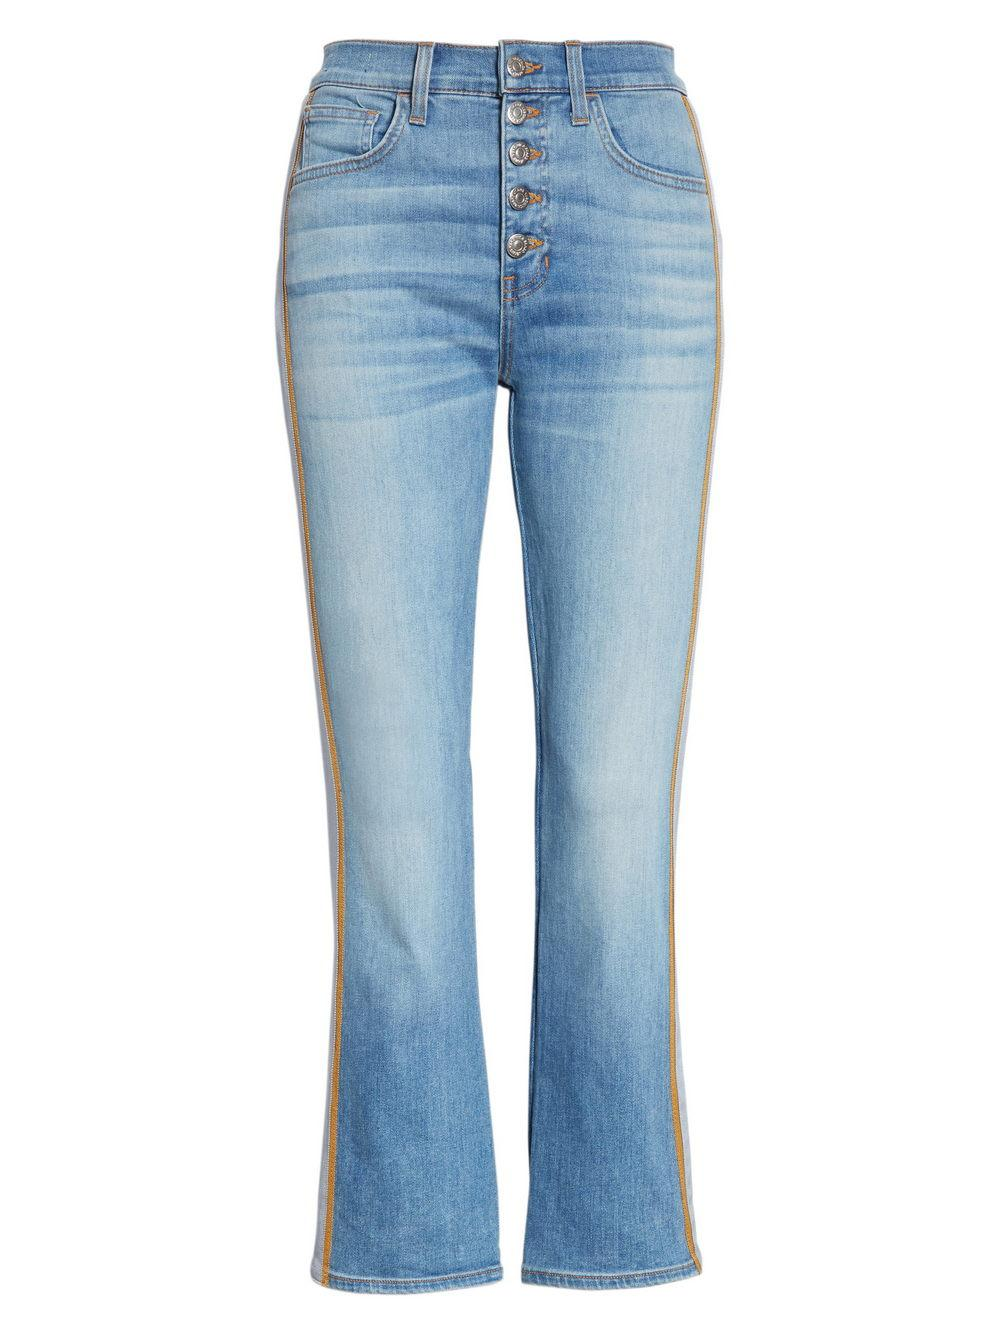 Carolyn High Rise Baby Boot Cut Jeans Item # J20054280003AM